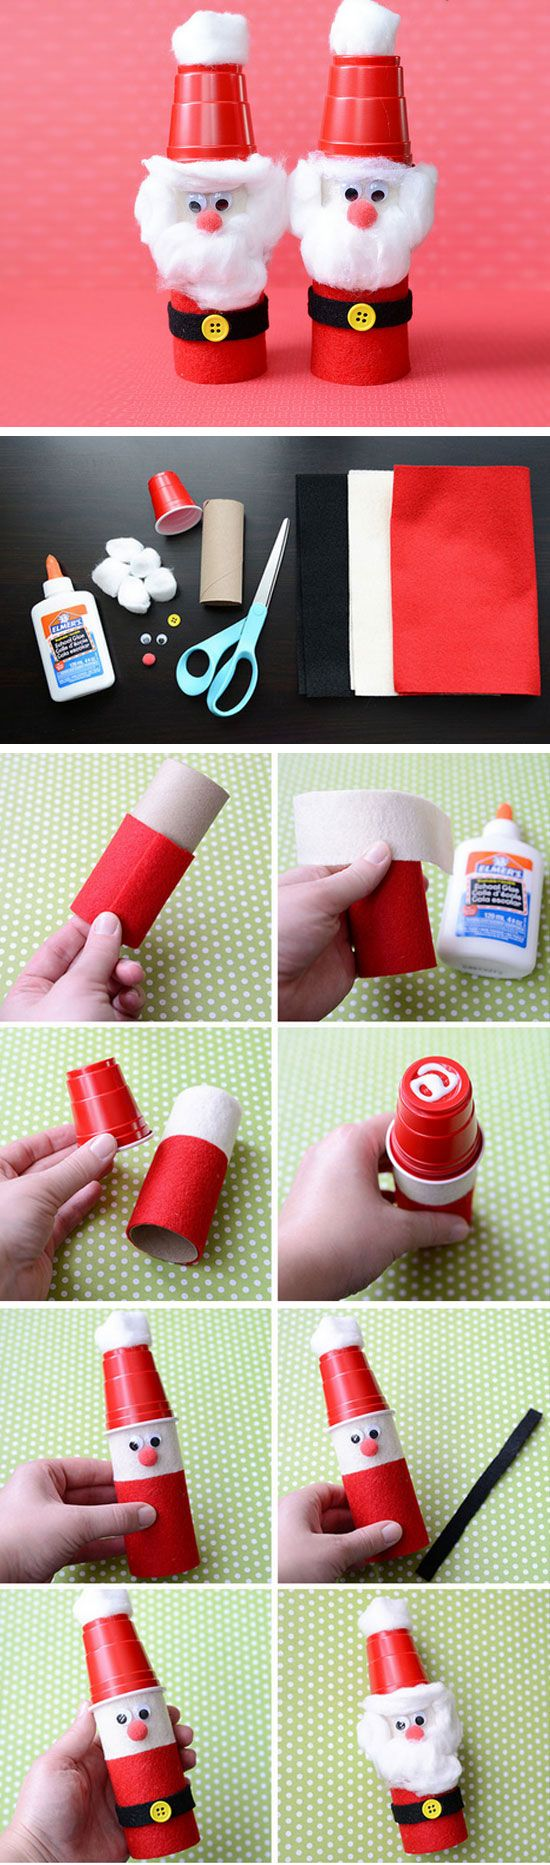 29 DIY Christmas Crafts for Kids to Make Plastic cups